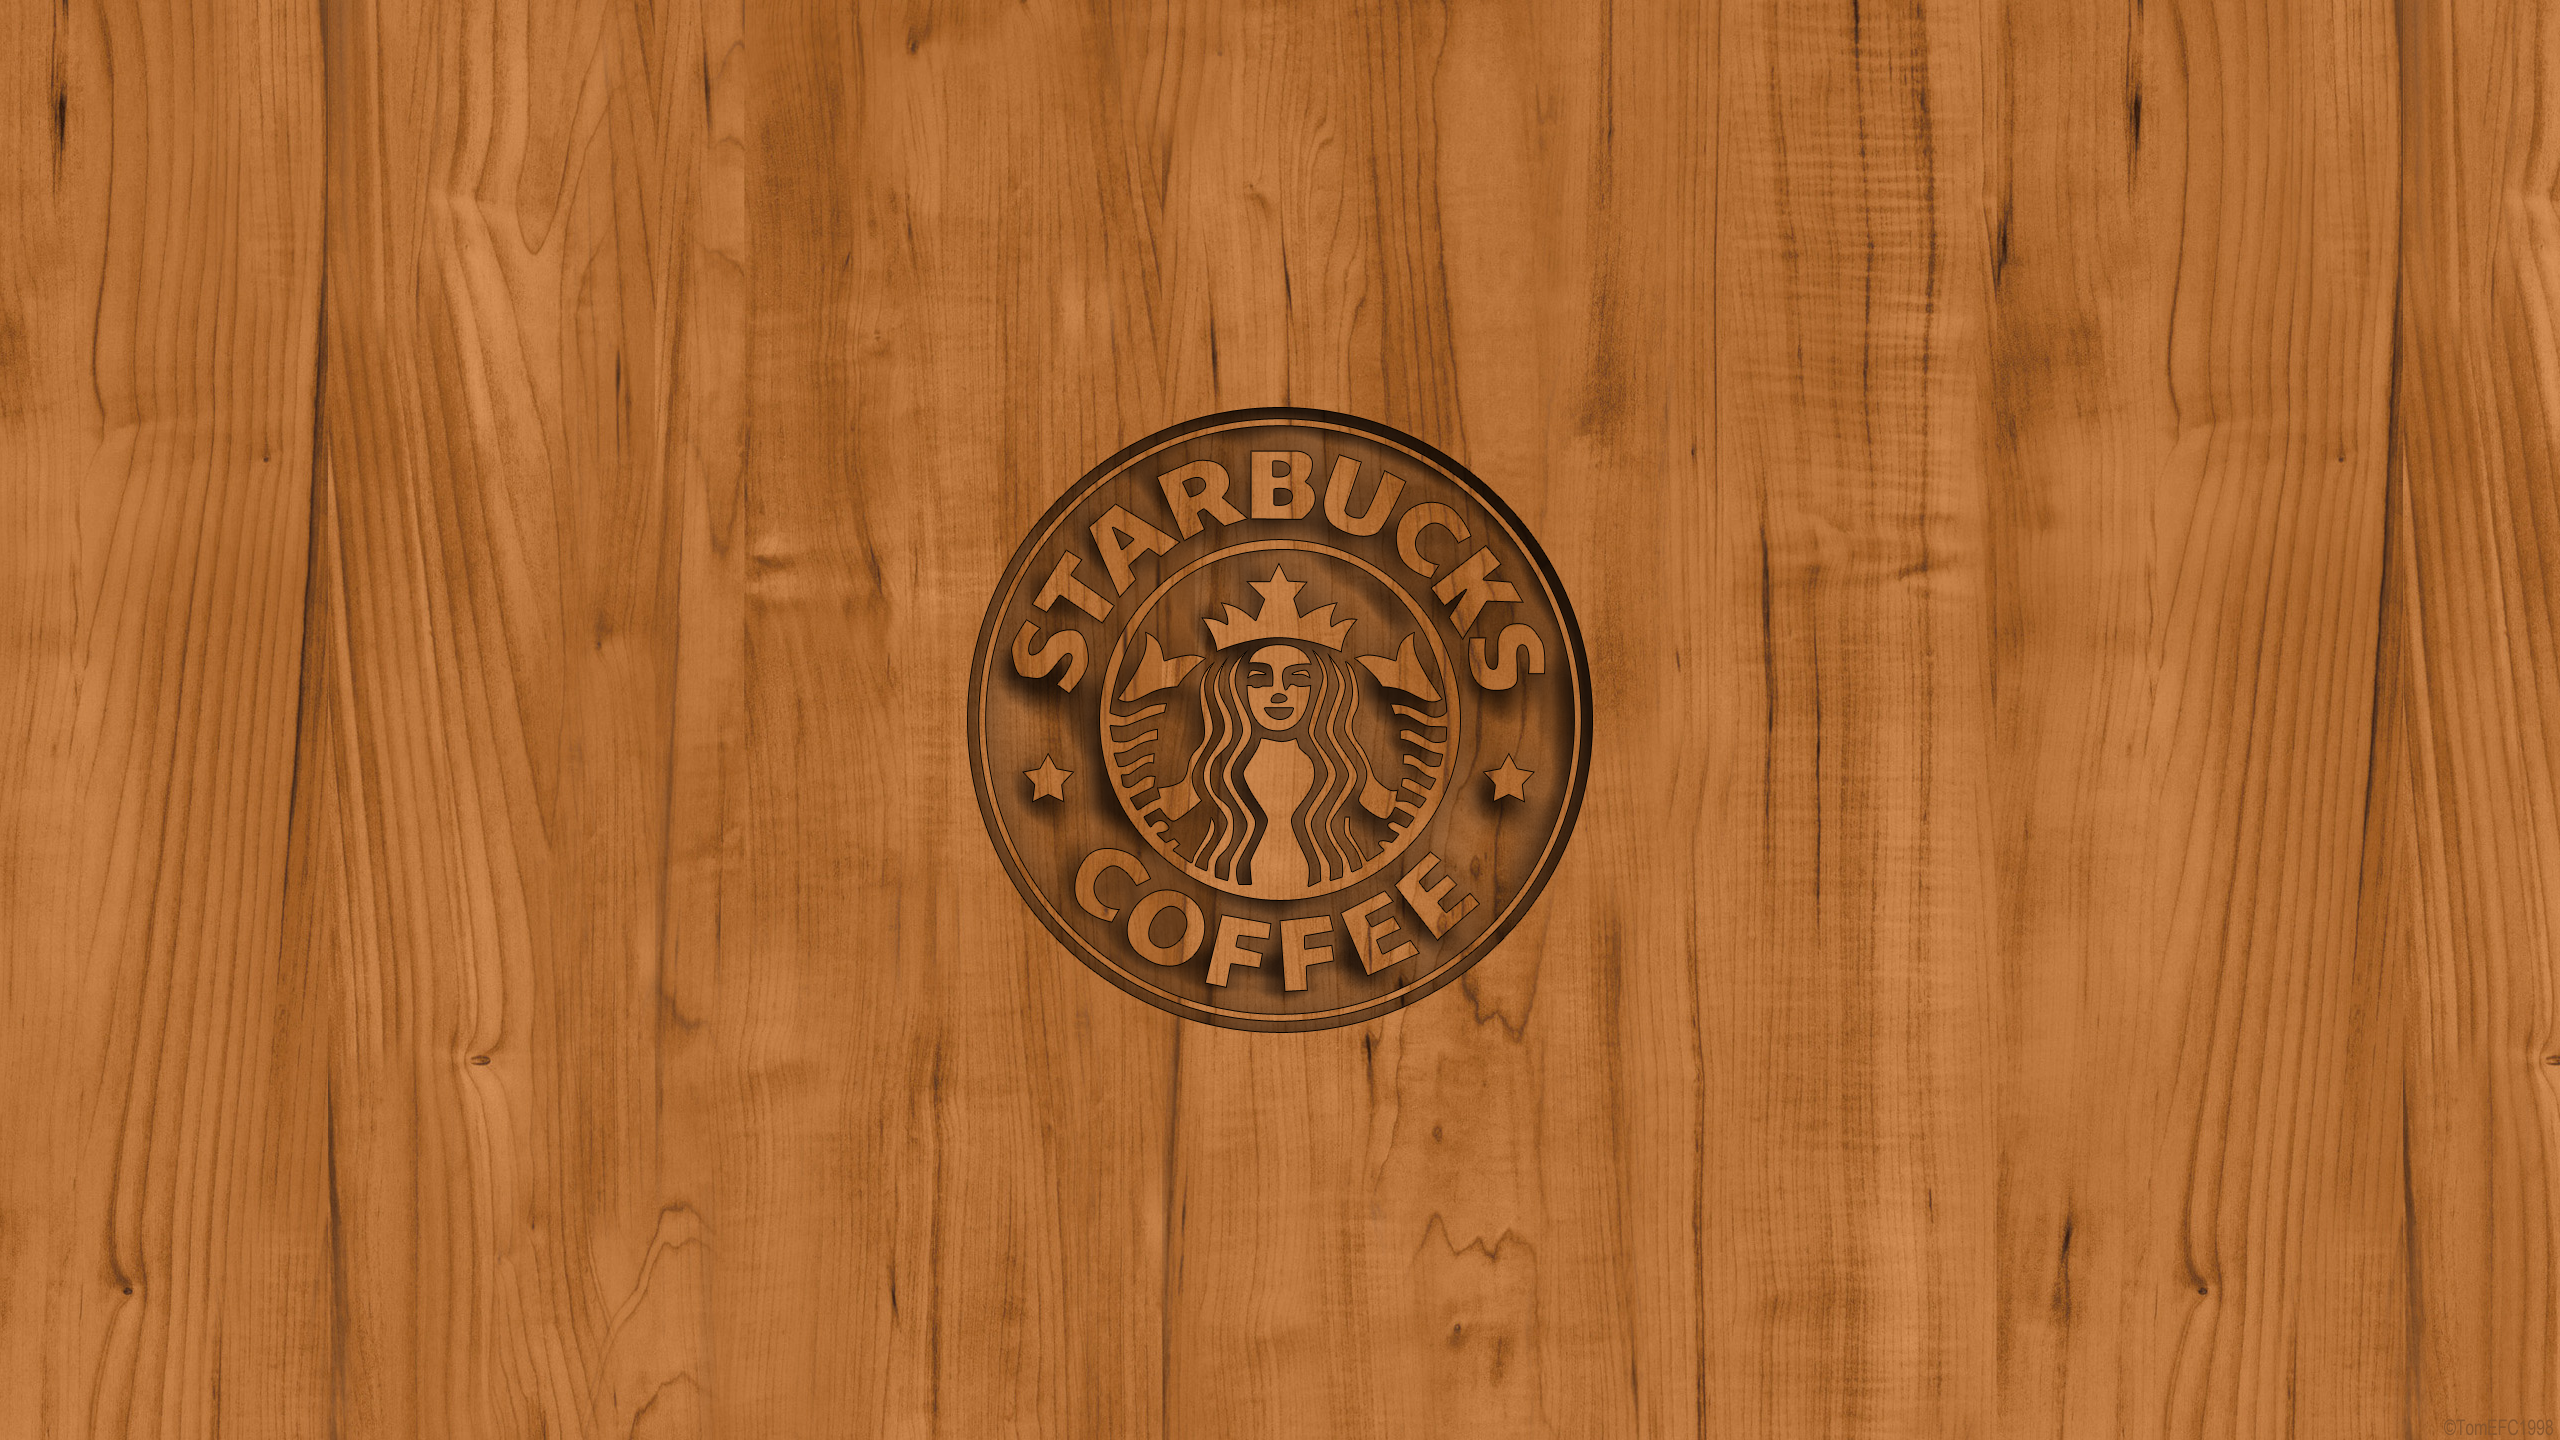 Starbucks Coffee Logo Wood Wallpaper by TomEFC98